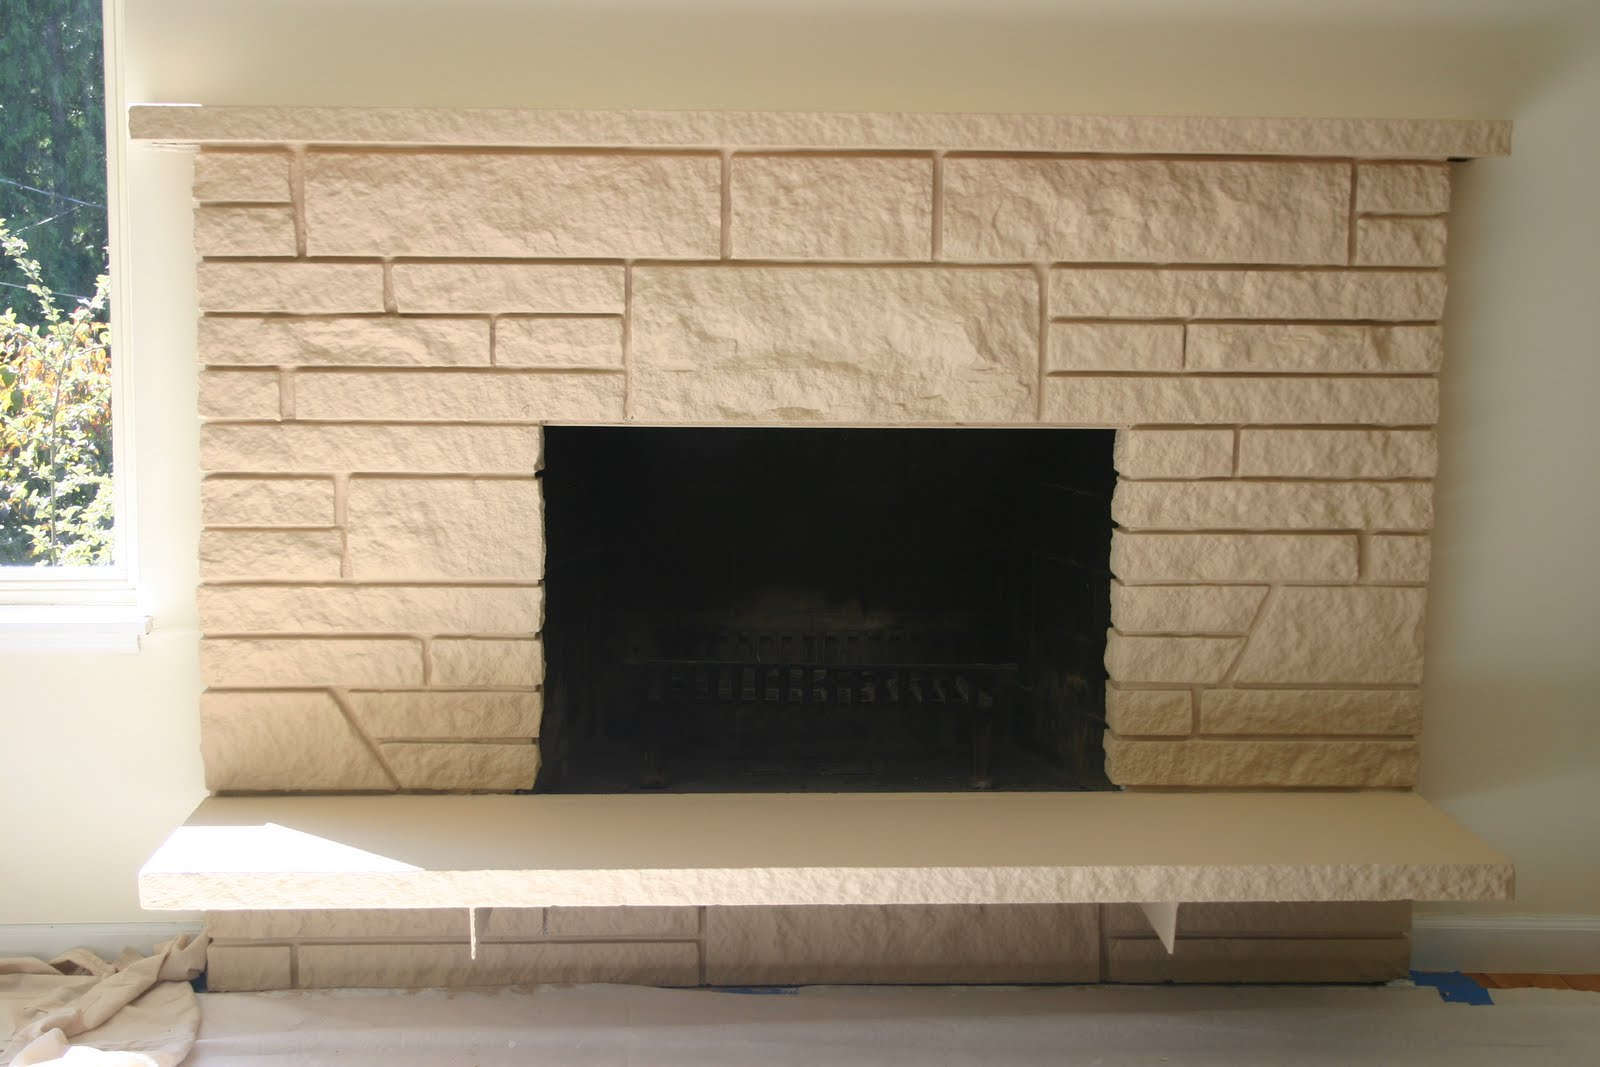 Painting Over Fireplace Remodelaholic Restoring A Painted Stone Fireplace